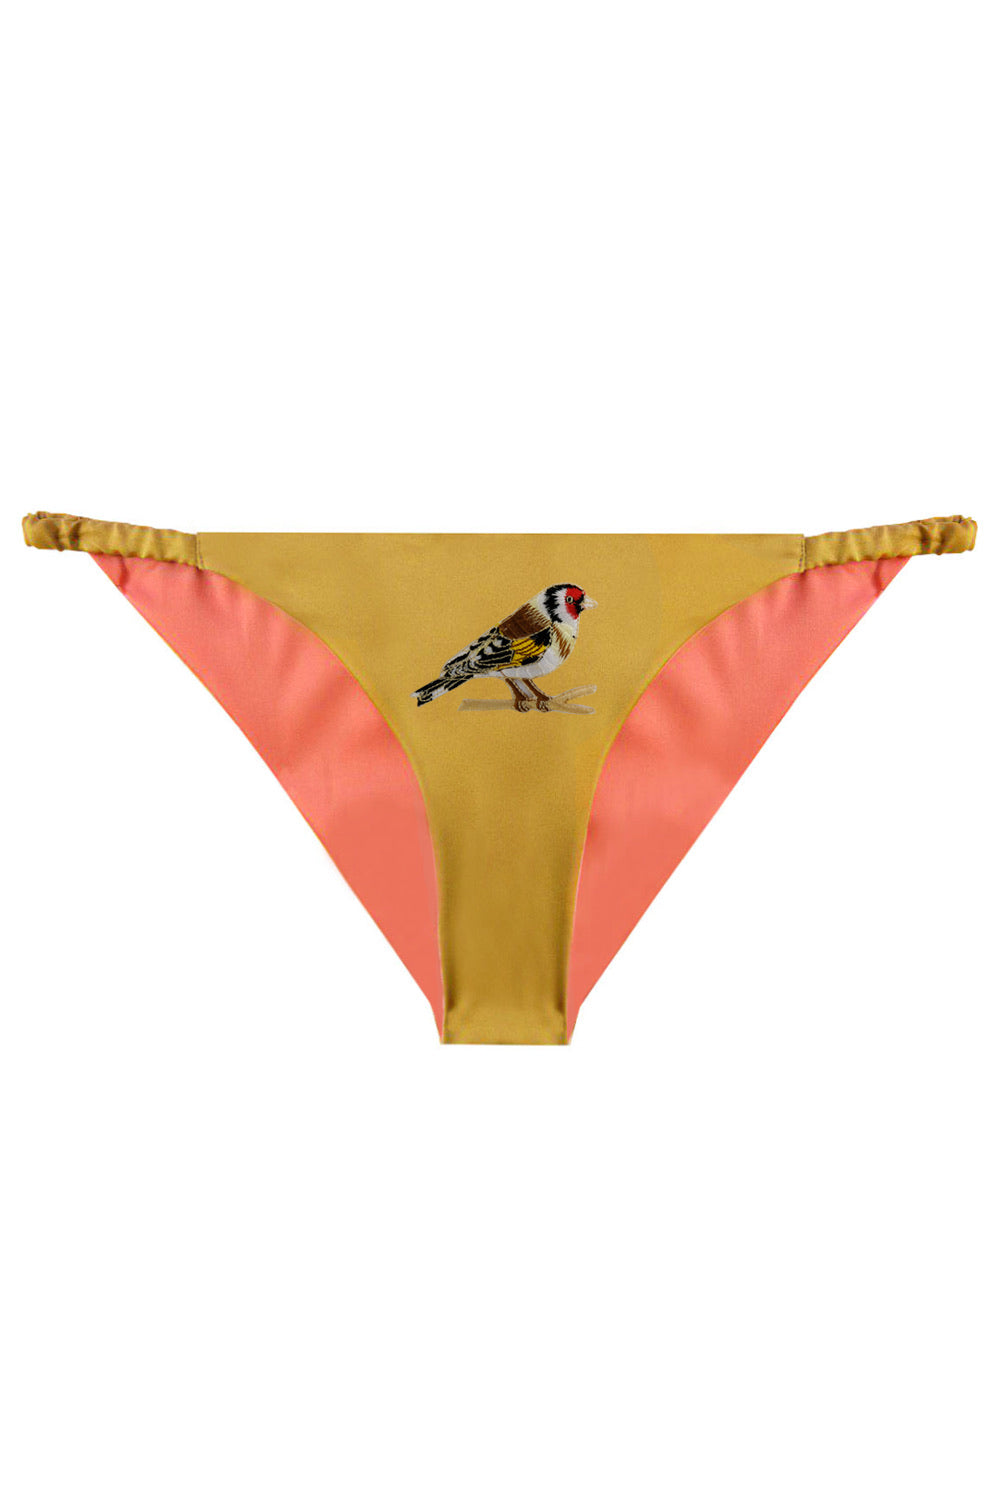 Aratinga panties - Slip panties by WOW! Panties. Shop on yesUndress